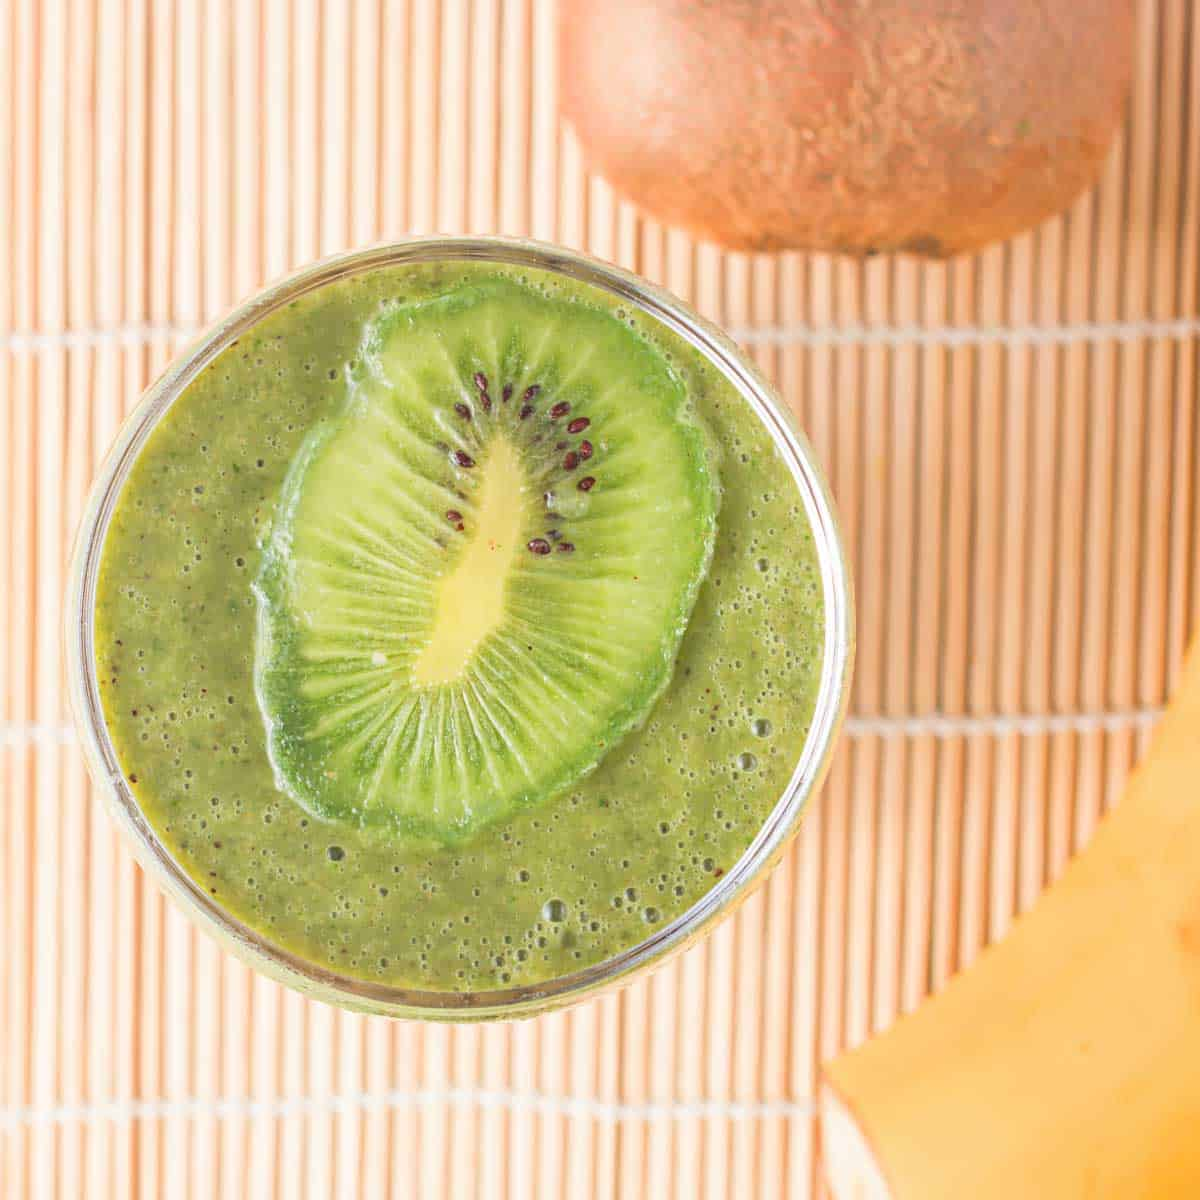 Overhead shot of kiwi smoothie with a sliced kiwi on top in a clear glass on a bamboo mat.